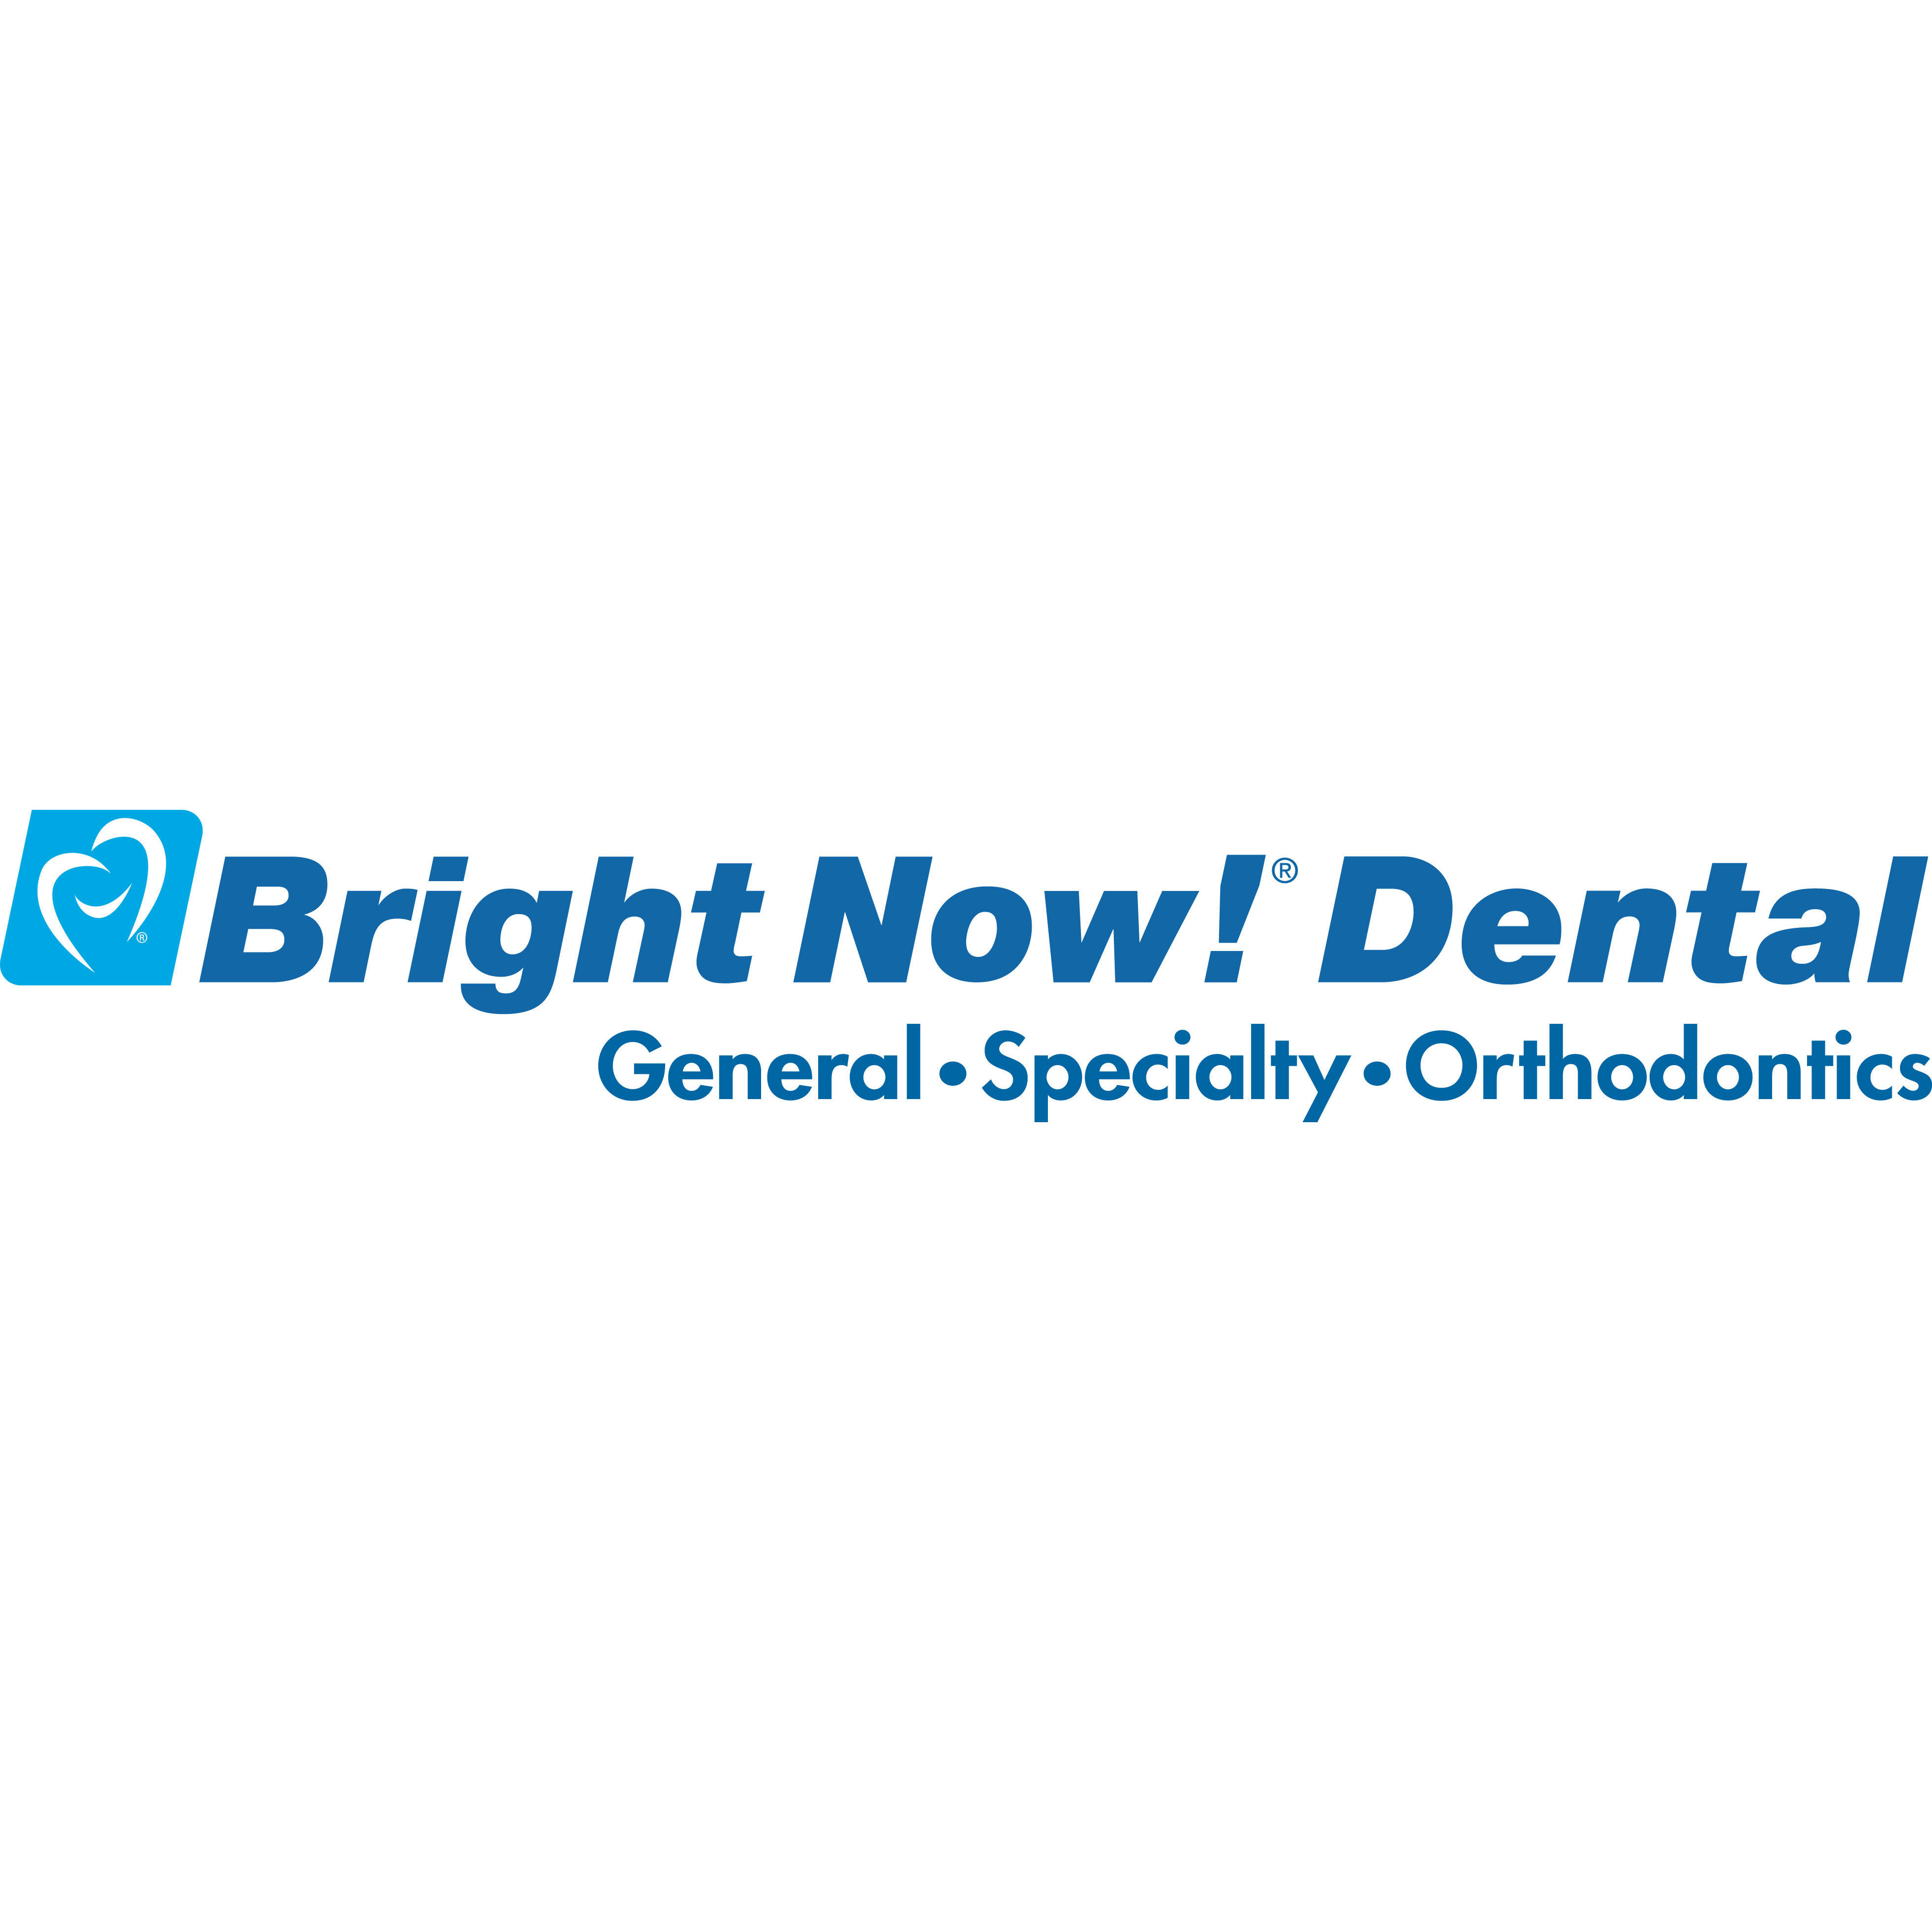 Bright Now! Dental image 6